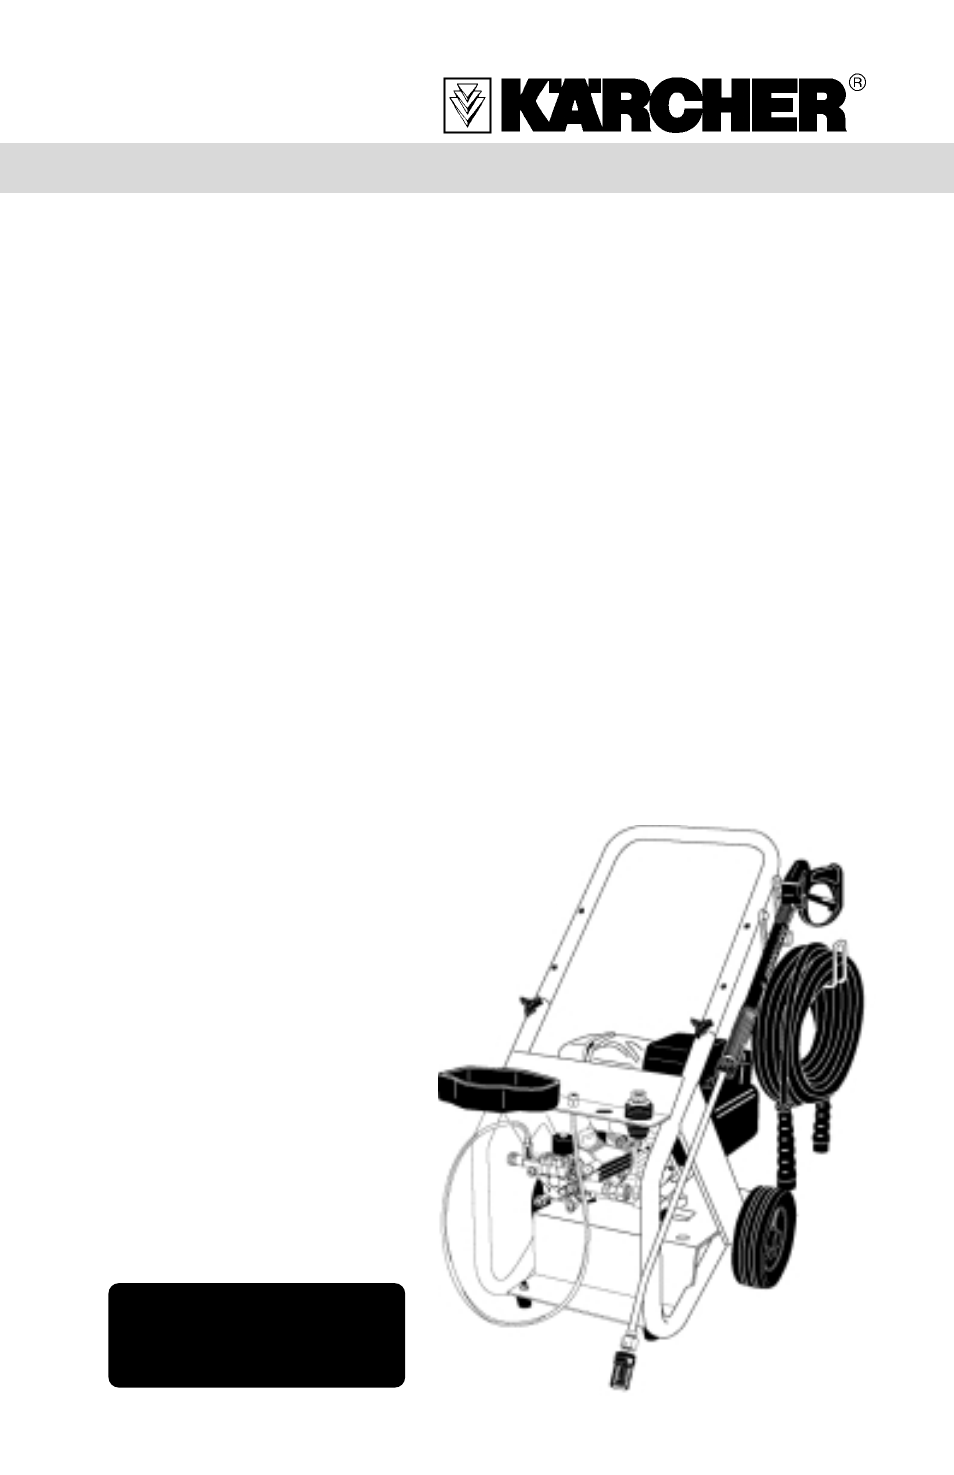 Karcher K 2400 Hb User Manual 12 Pages Also For G Hh Craftsman Pressure Washer Wiring Diagram Hd 2500 Hk